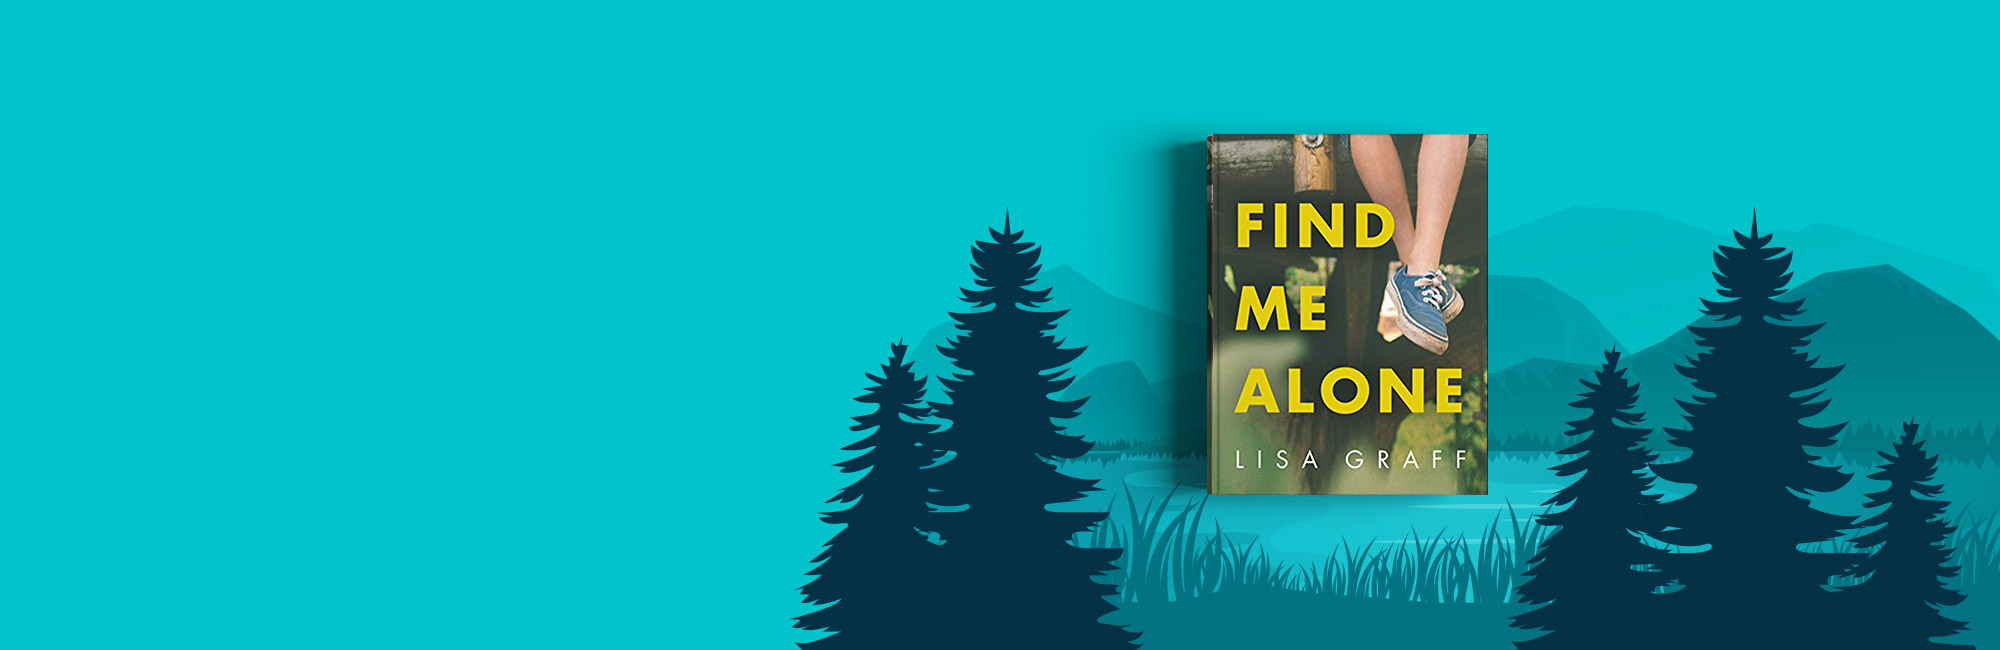 Find Me Alone book on a background with mountains, lake, and trees